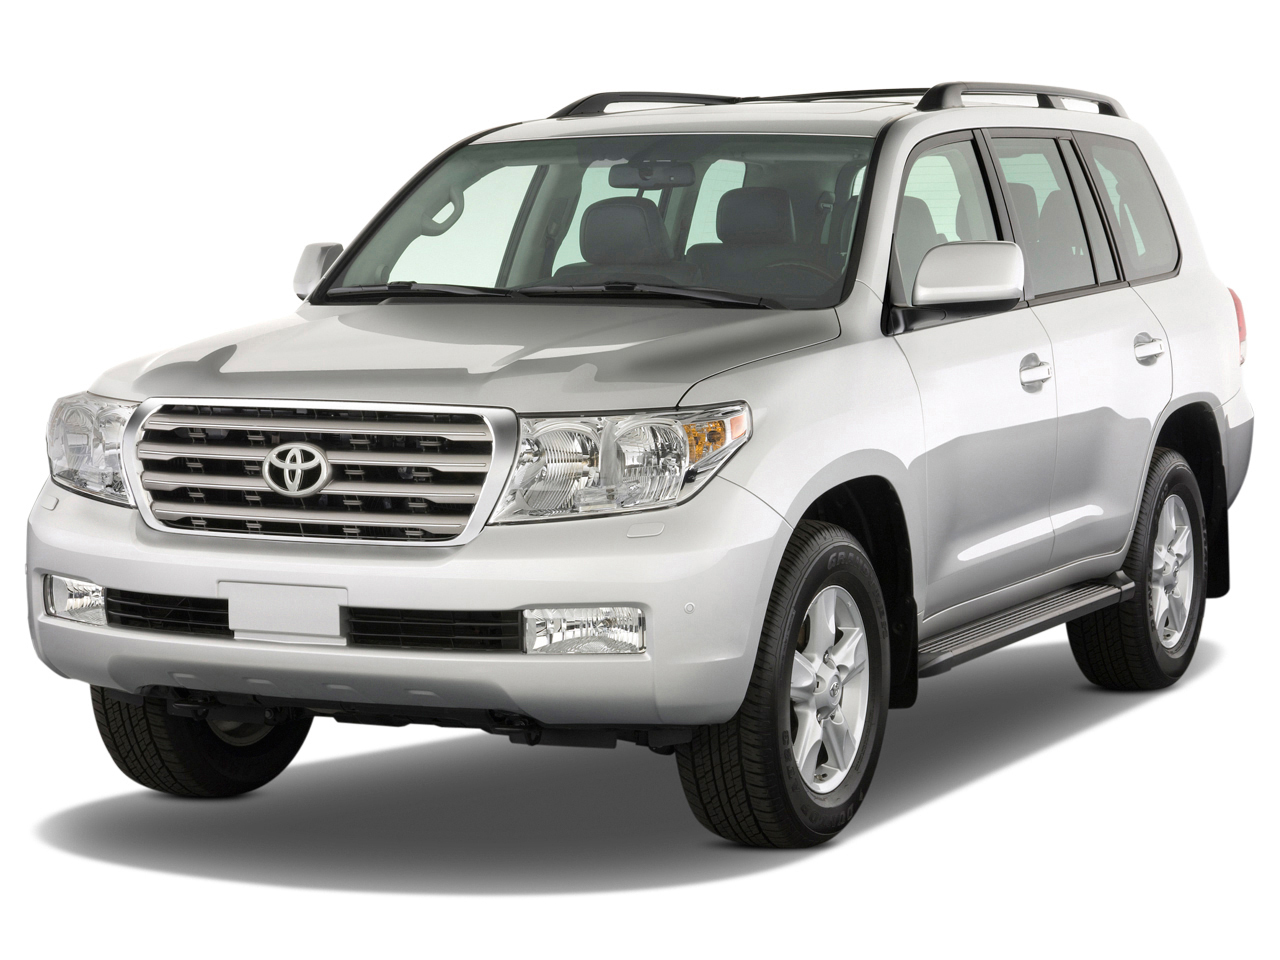 2011 Toyota Land Cruiser Review Ratings Specs Prices